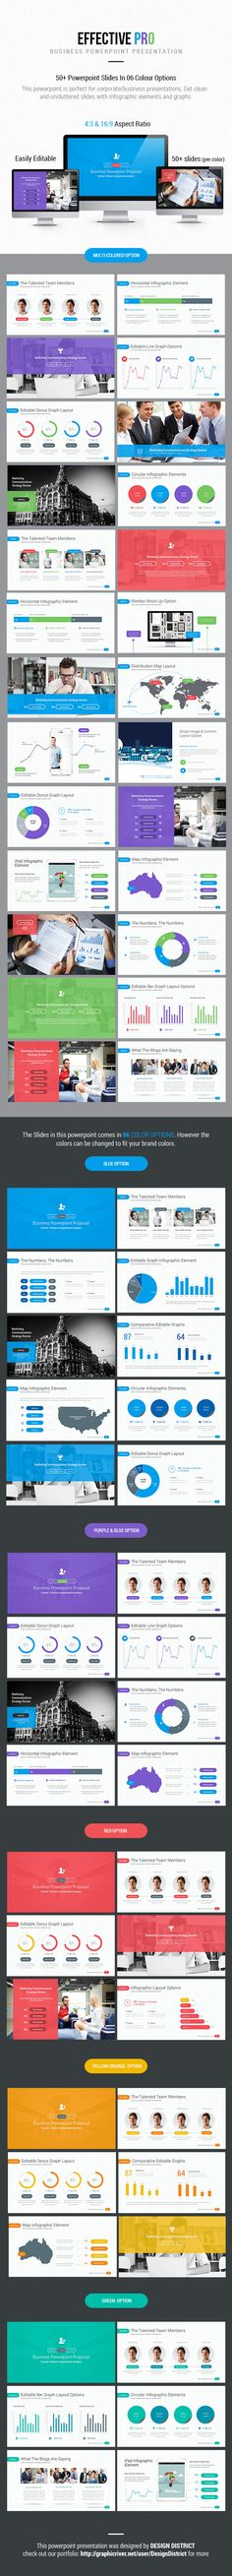 financial report fullhd powerpoint template on behance, Presentation templates